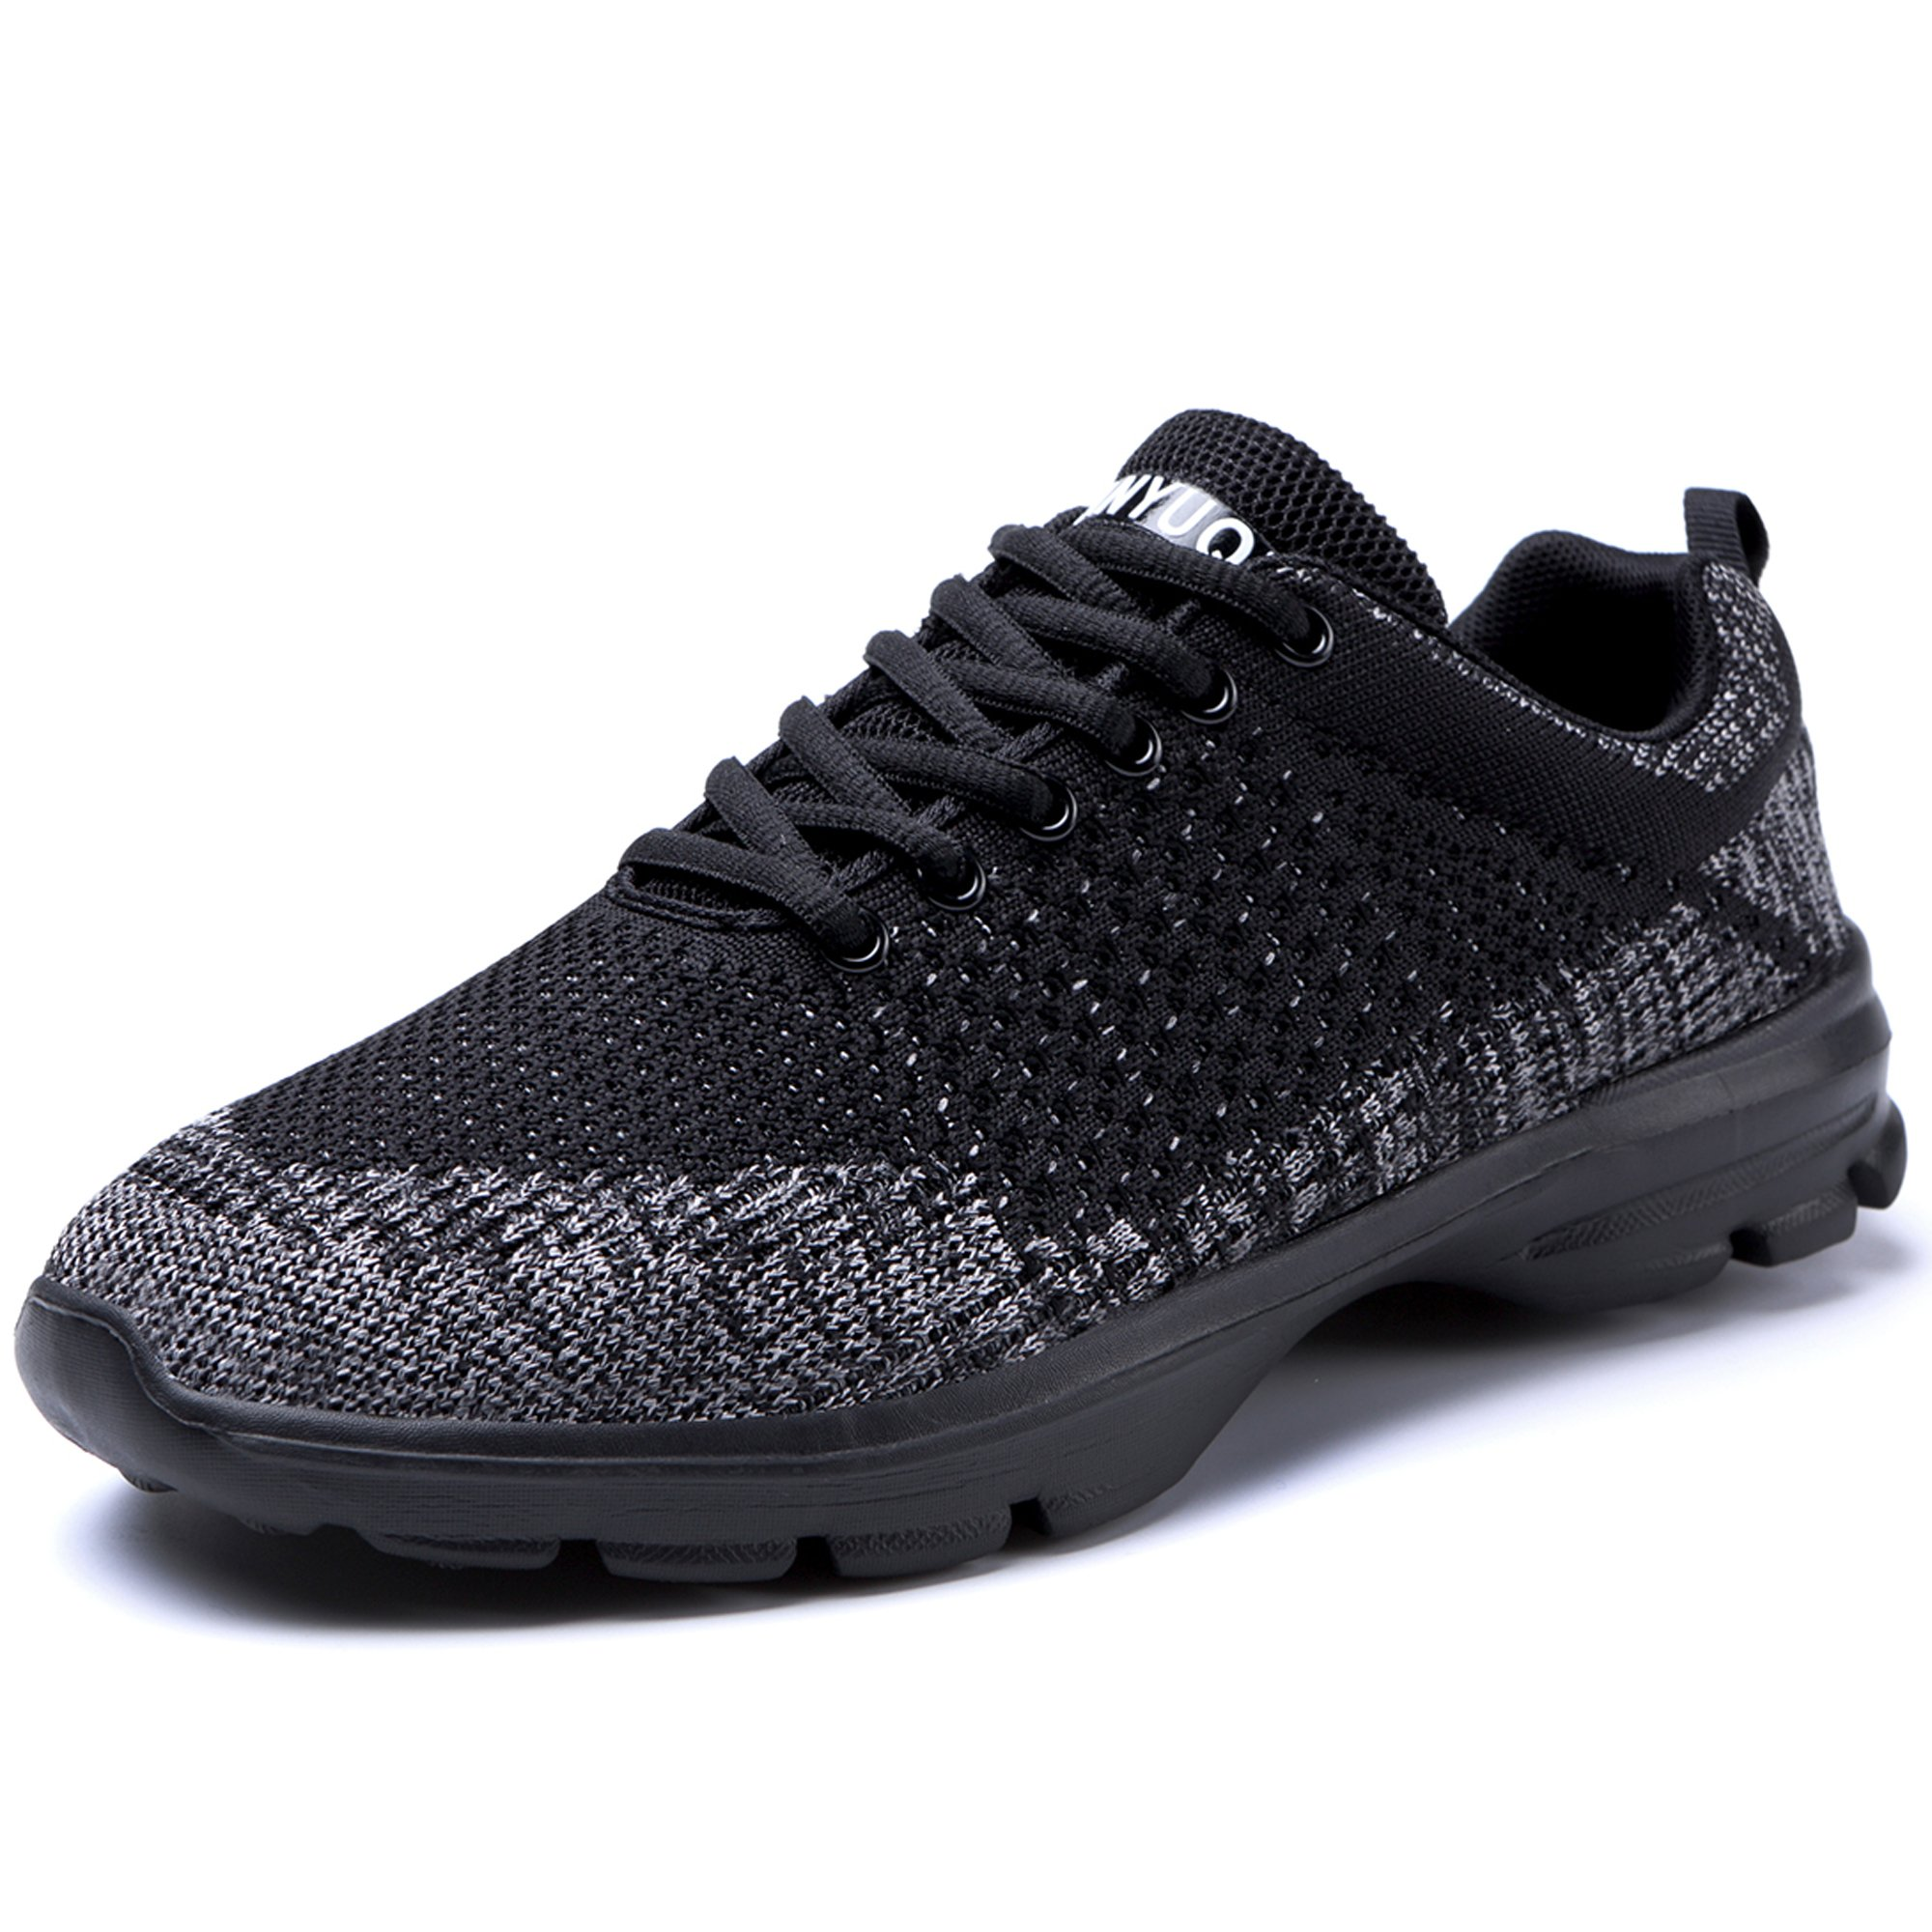 eyeones Men's Women's Lightweight Walking Sneakers Shoes for Athletic Casual Outdoor Sports